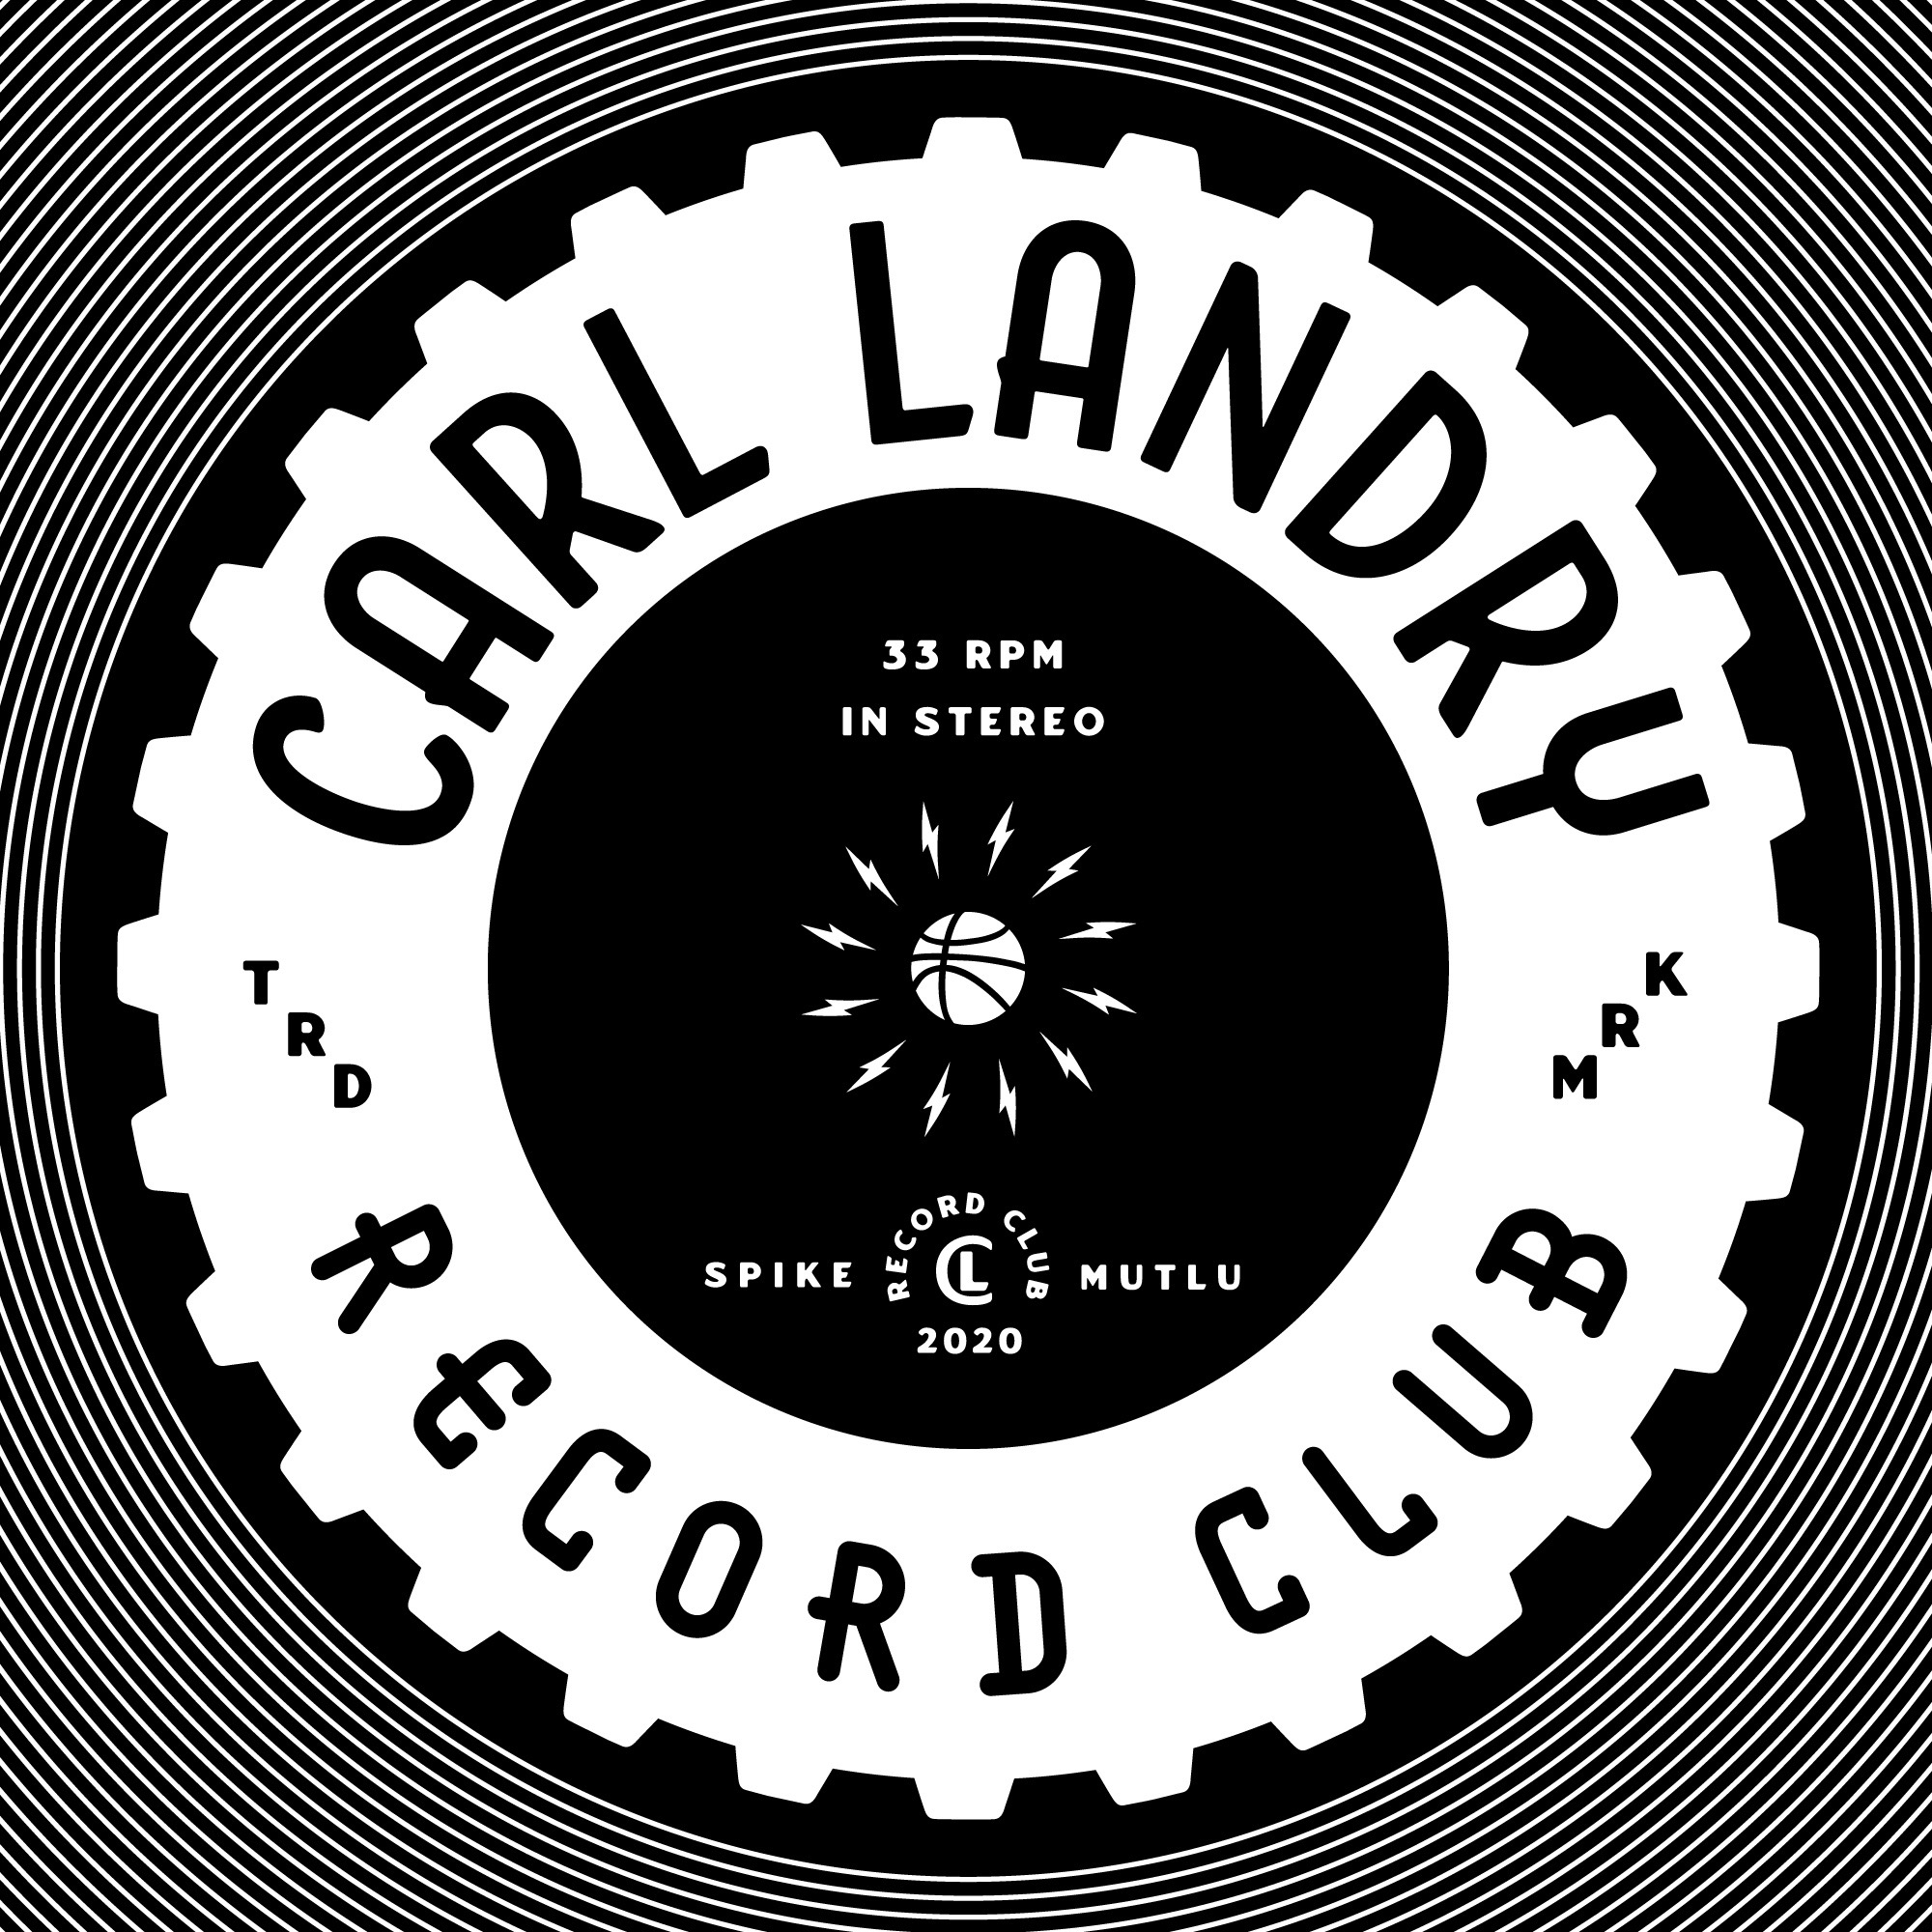 Carl Landry Record Club